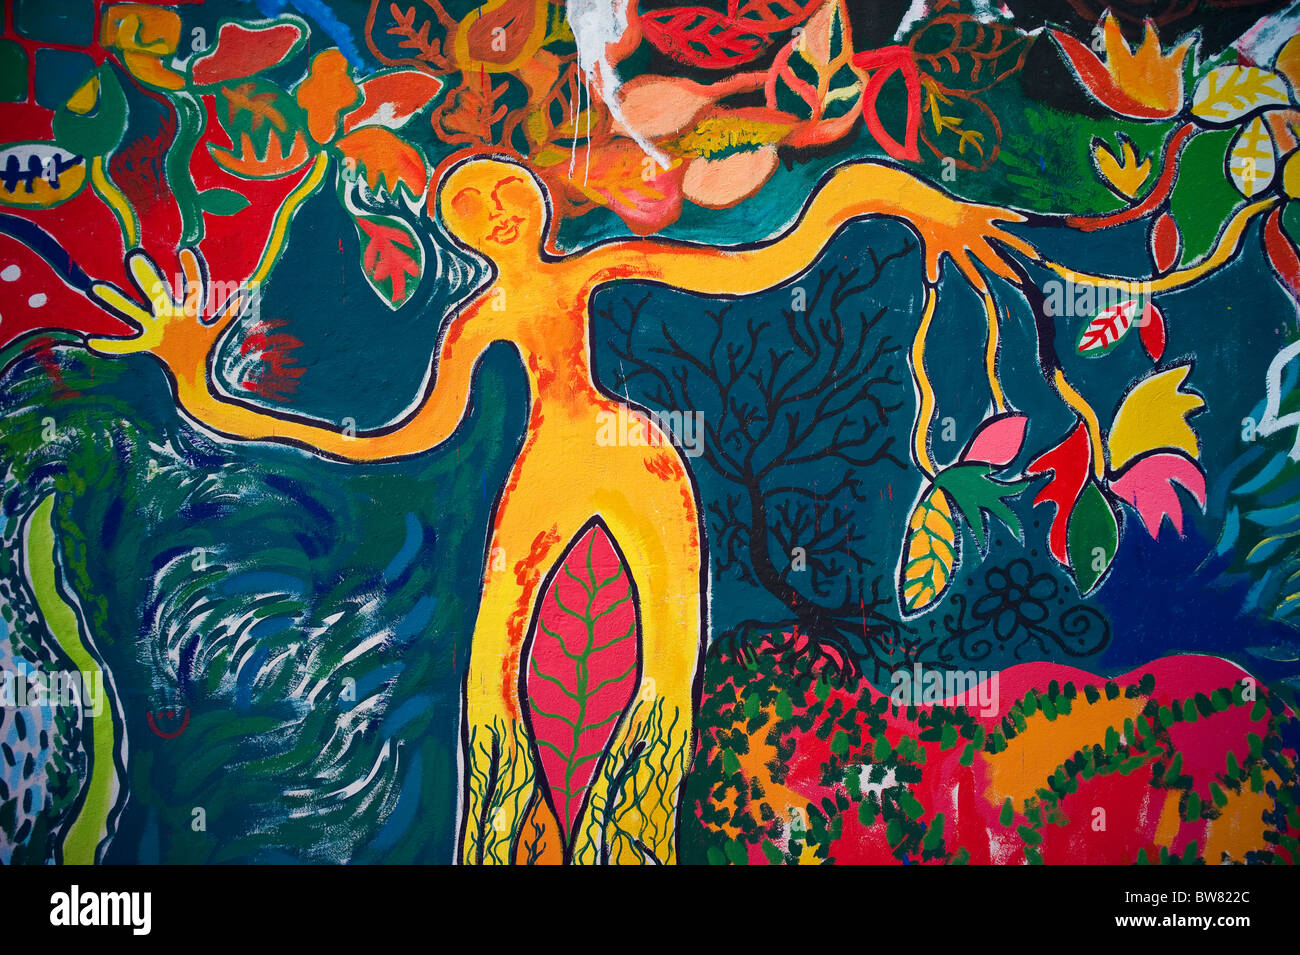 Colorful Abstract Wall Painting Of Mother Nature Quito Ecuador